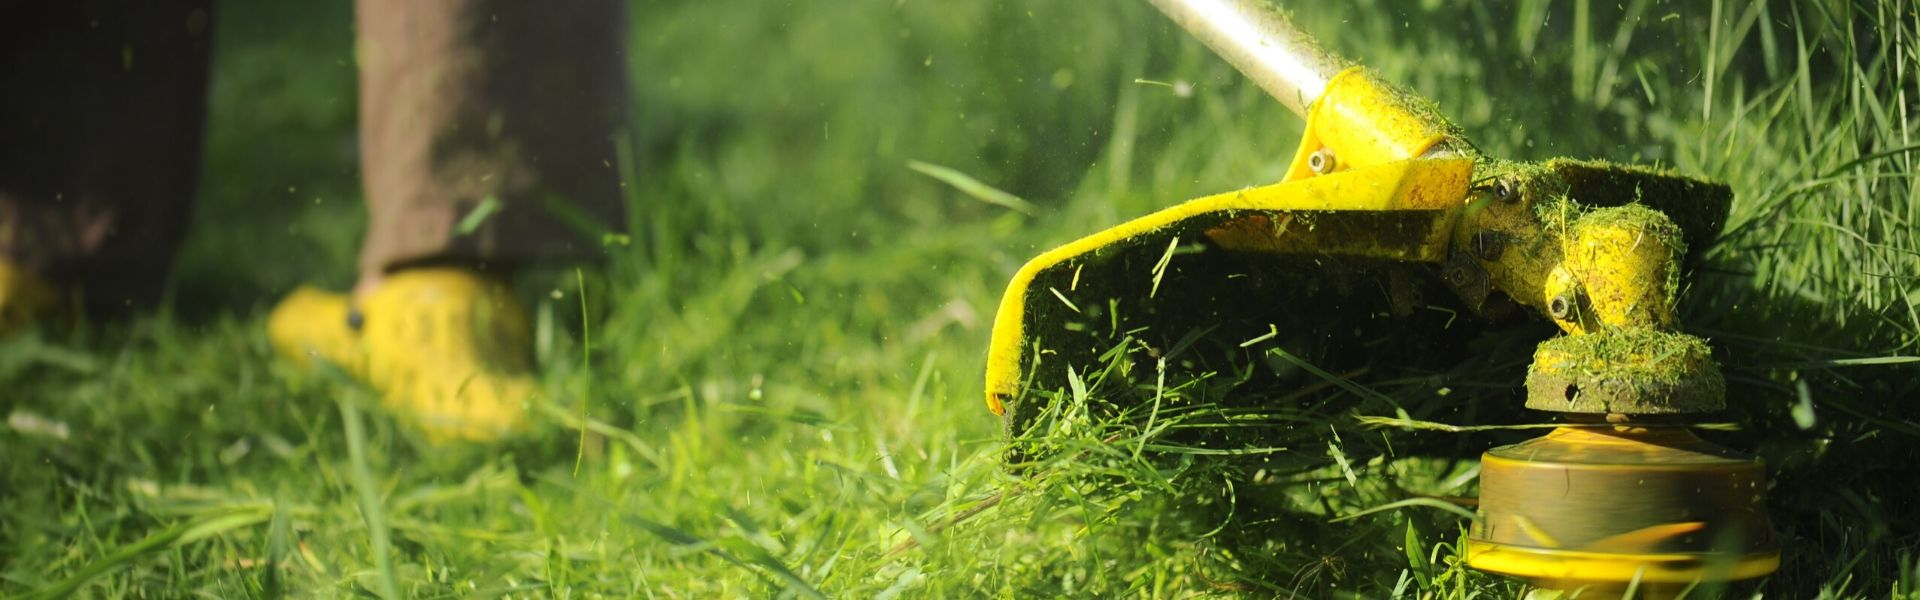 Closeup photo of weedwhacker doing commercial landscaping